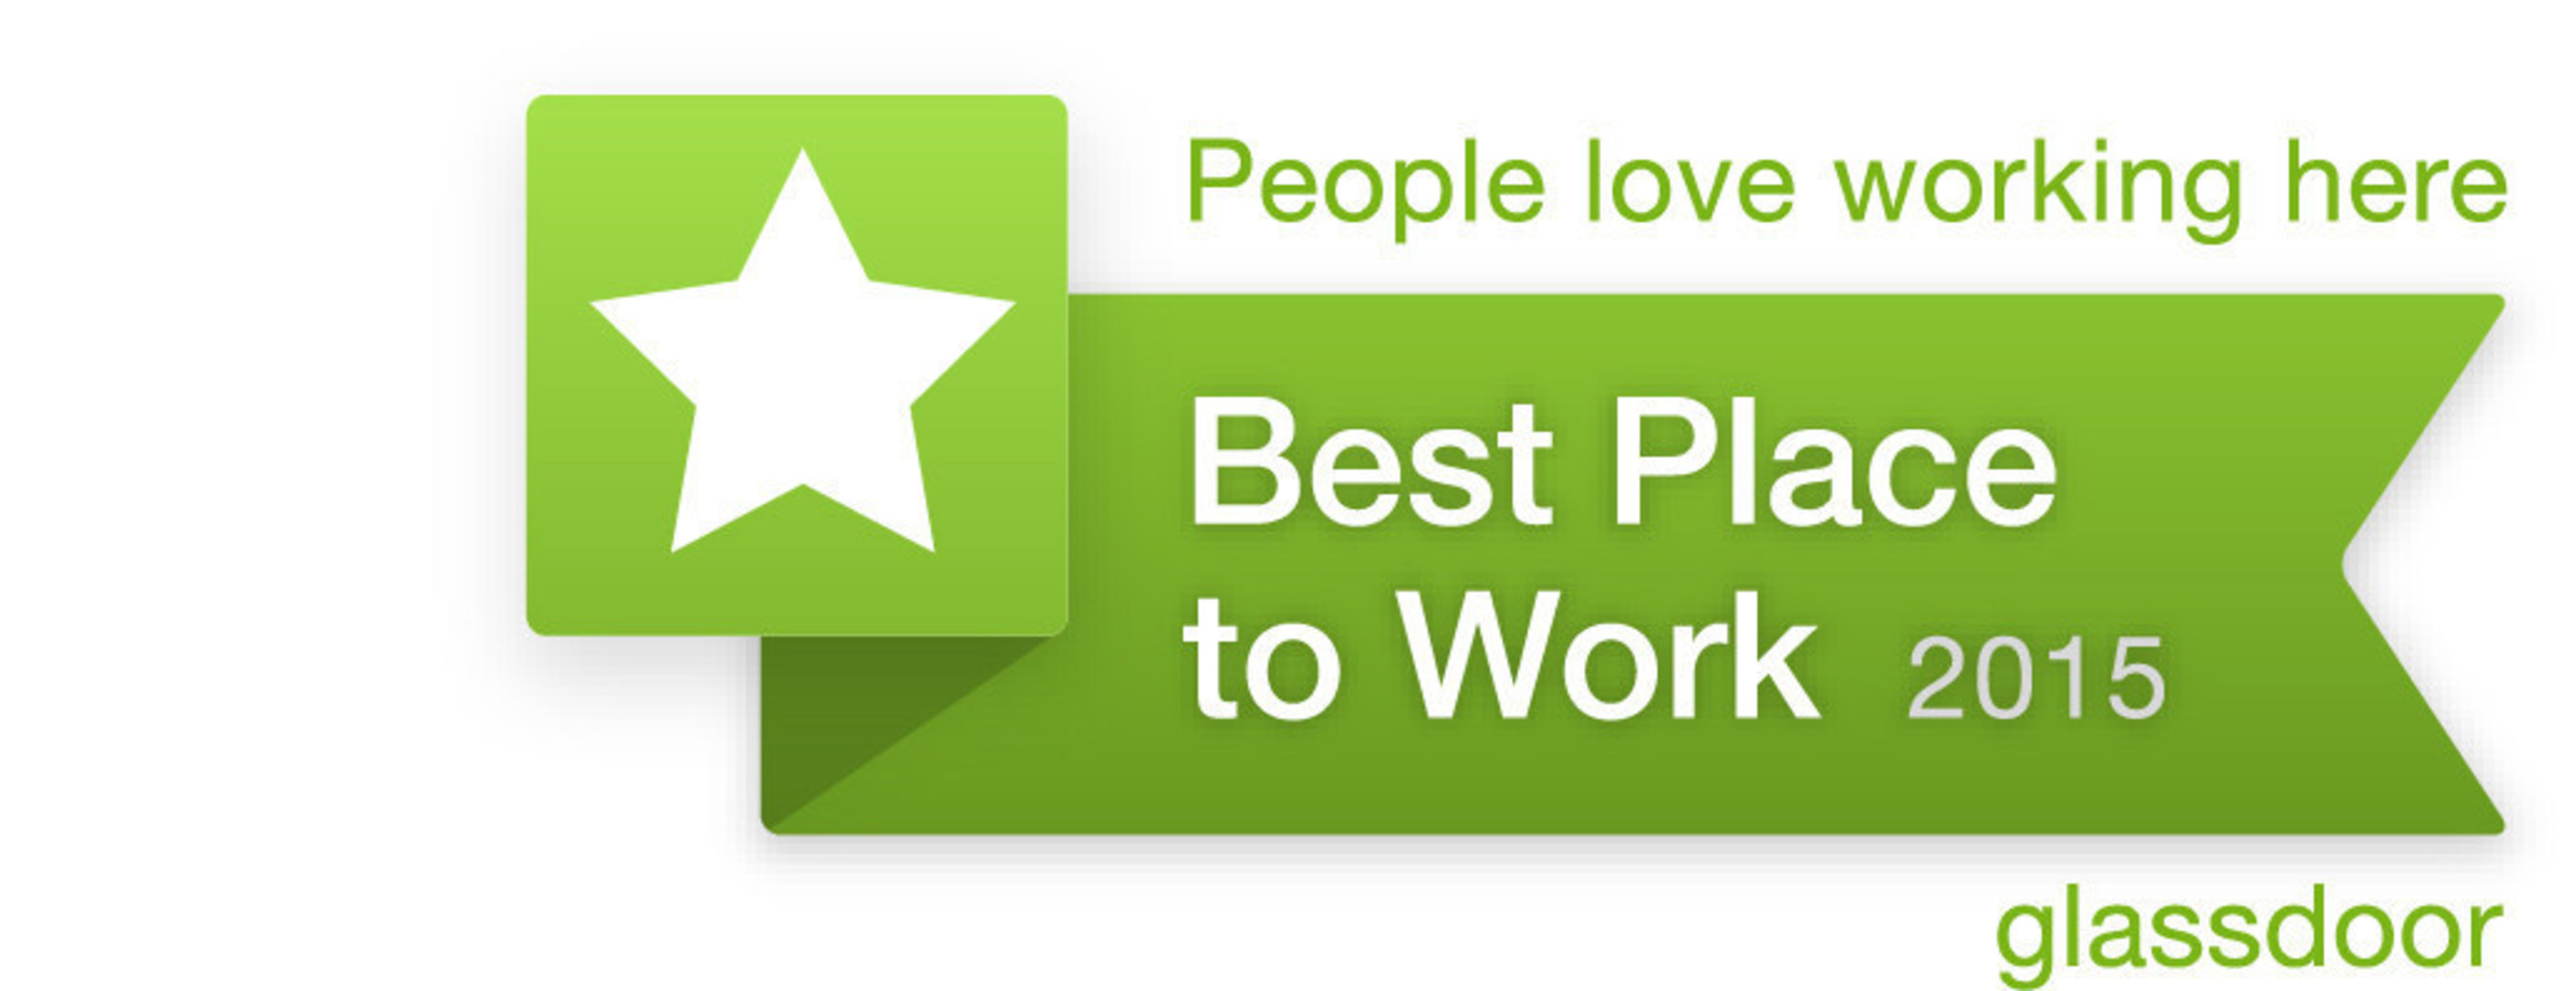 Velocify Named 23rd Best Place To Work In 2015 A Glassdoor